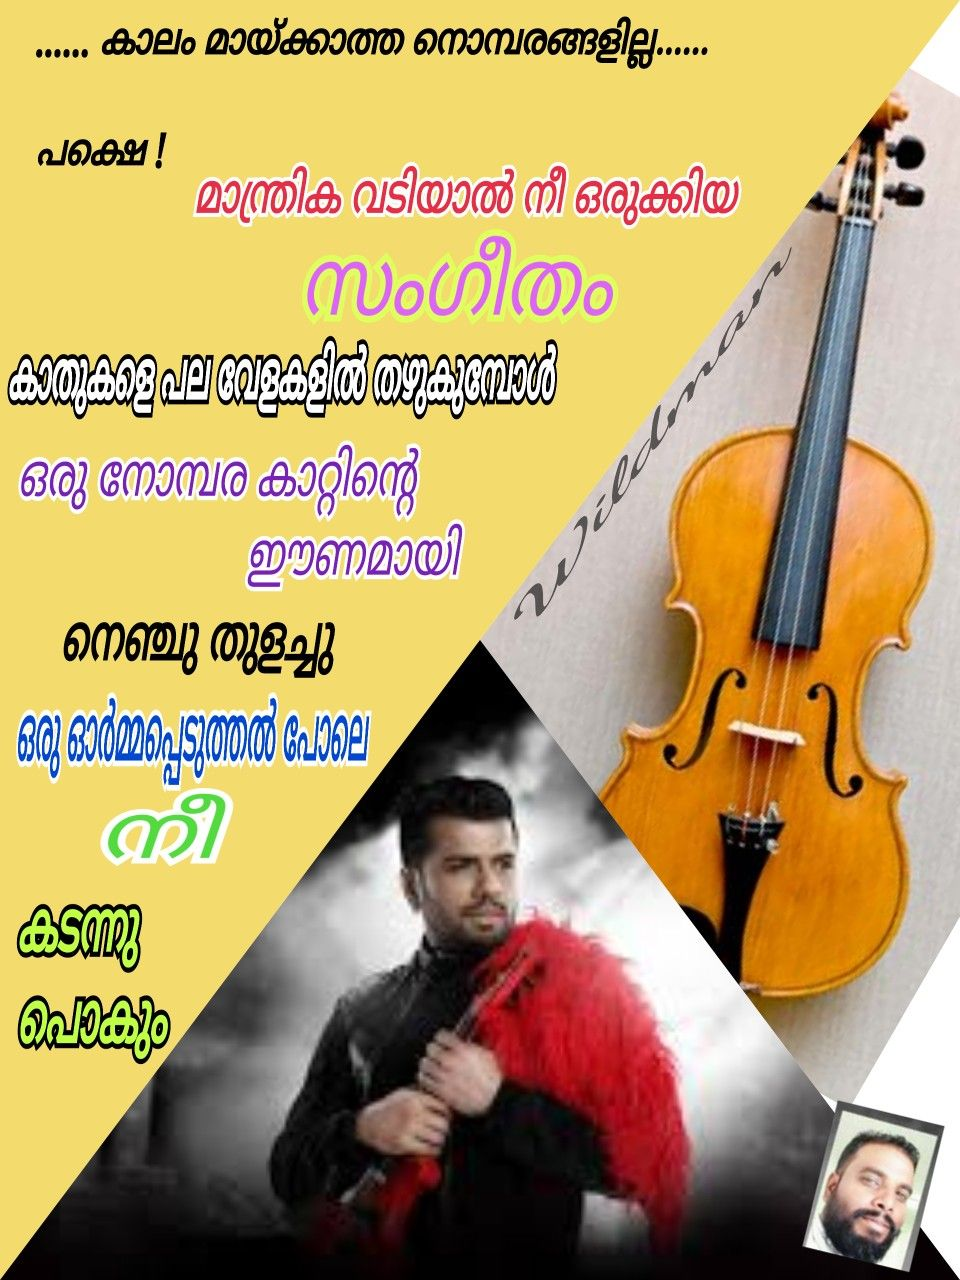 Pin By Anilkumar Tr On My Malayalam Poems Violin Poems Music Instruments